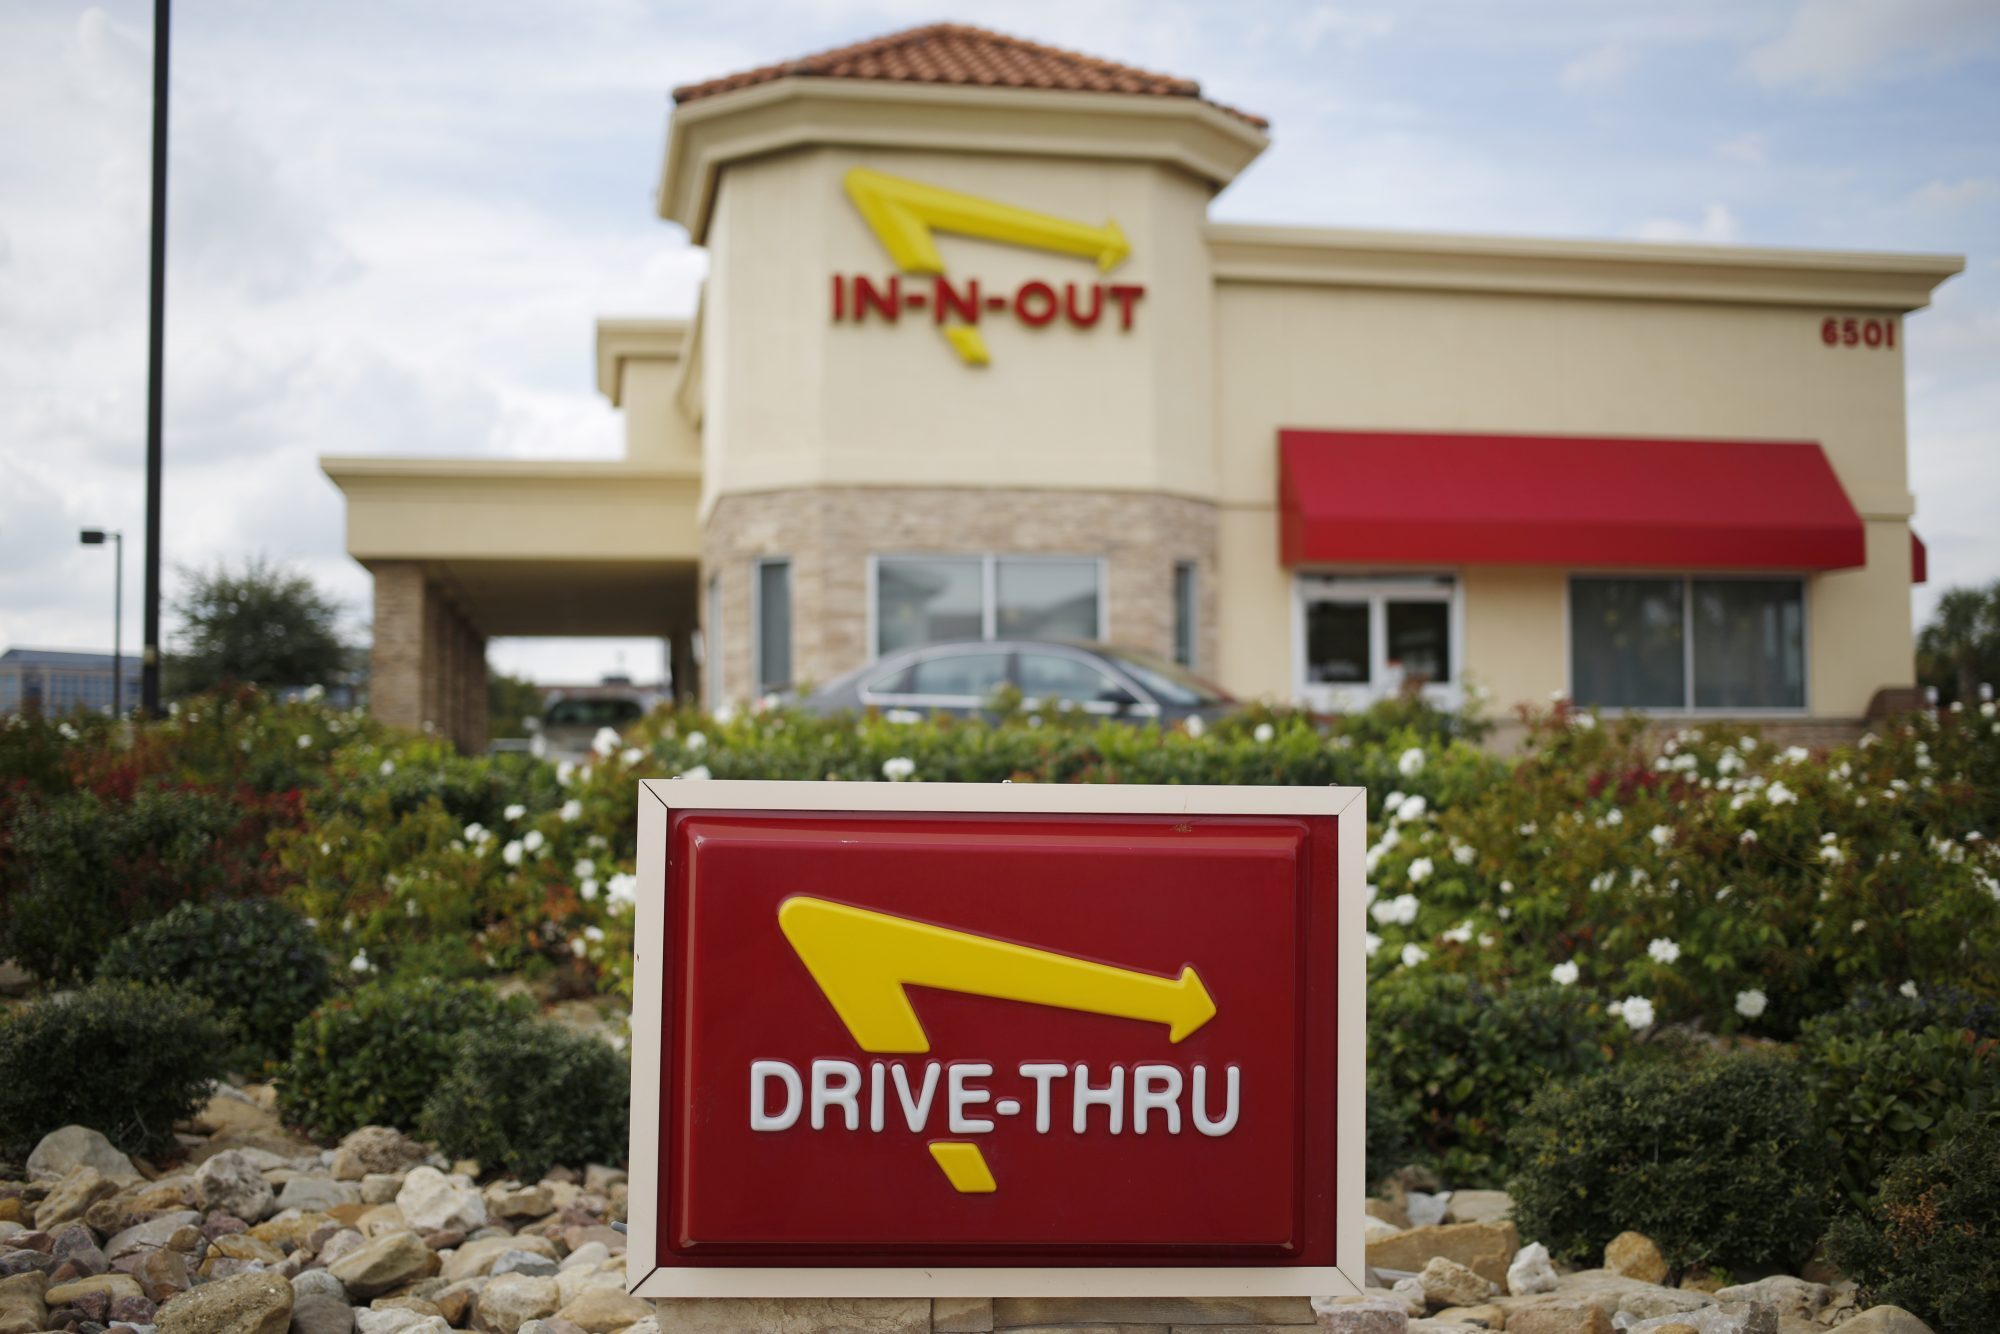 A drive-thru sign is displayed outside of a In-N-Out Burger restaurant in Dallas, Texas, U.S., on Tuesday, Oct. 25, 2016. Good Food Institute has started a petition to pressure In-N-Out Burger to offer meatless options on its menu. Photographer: Luke Shar